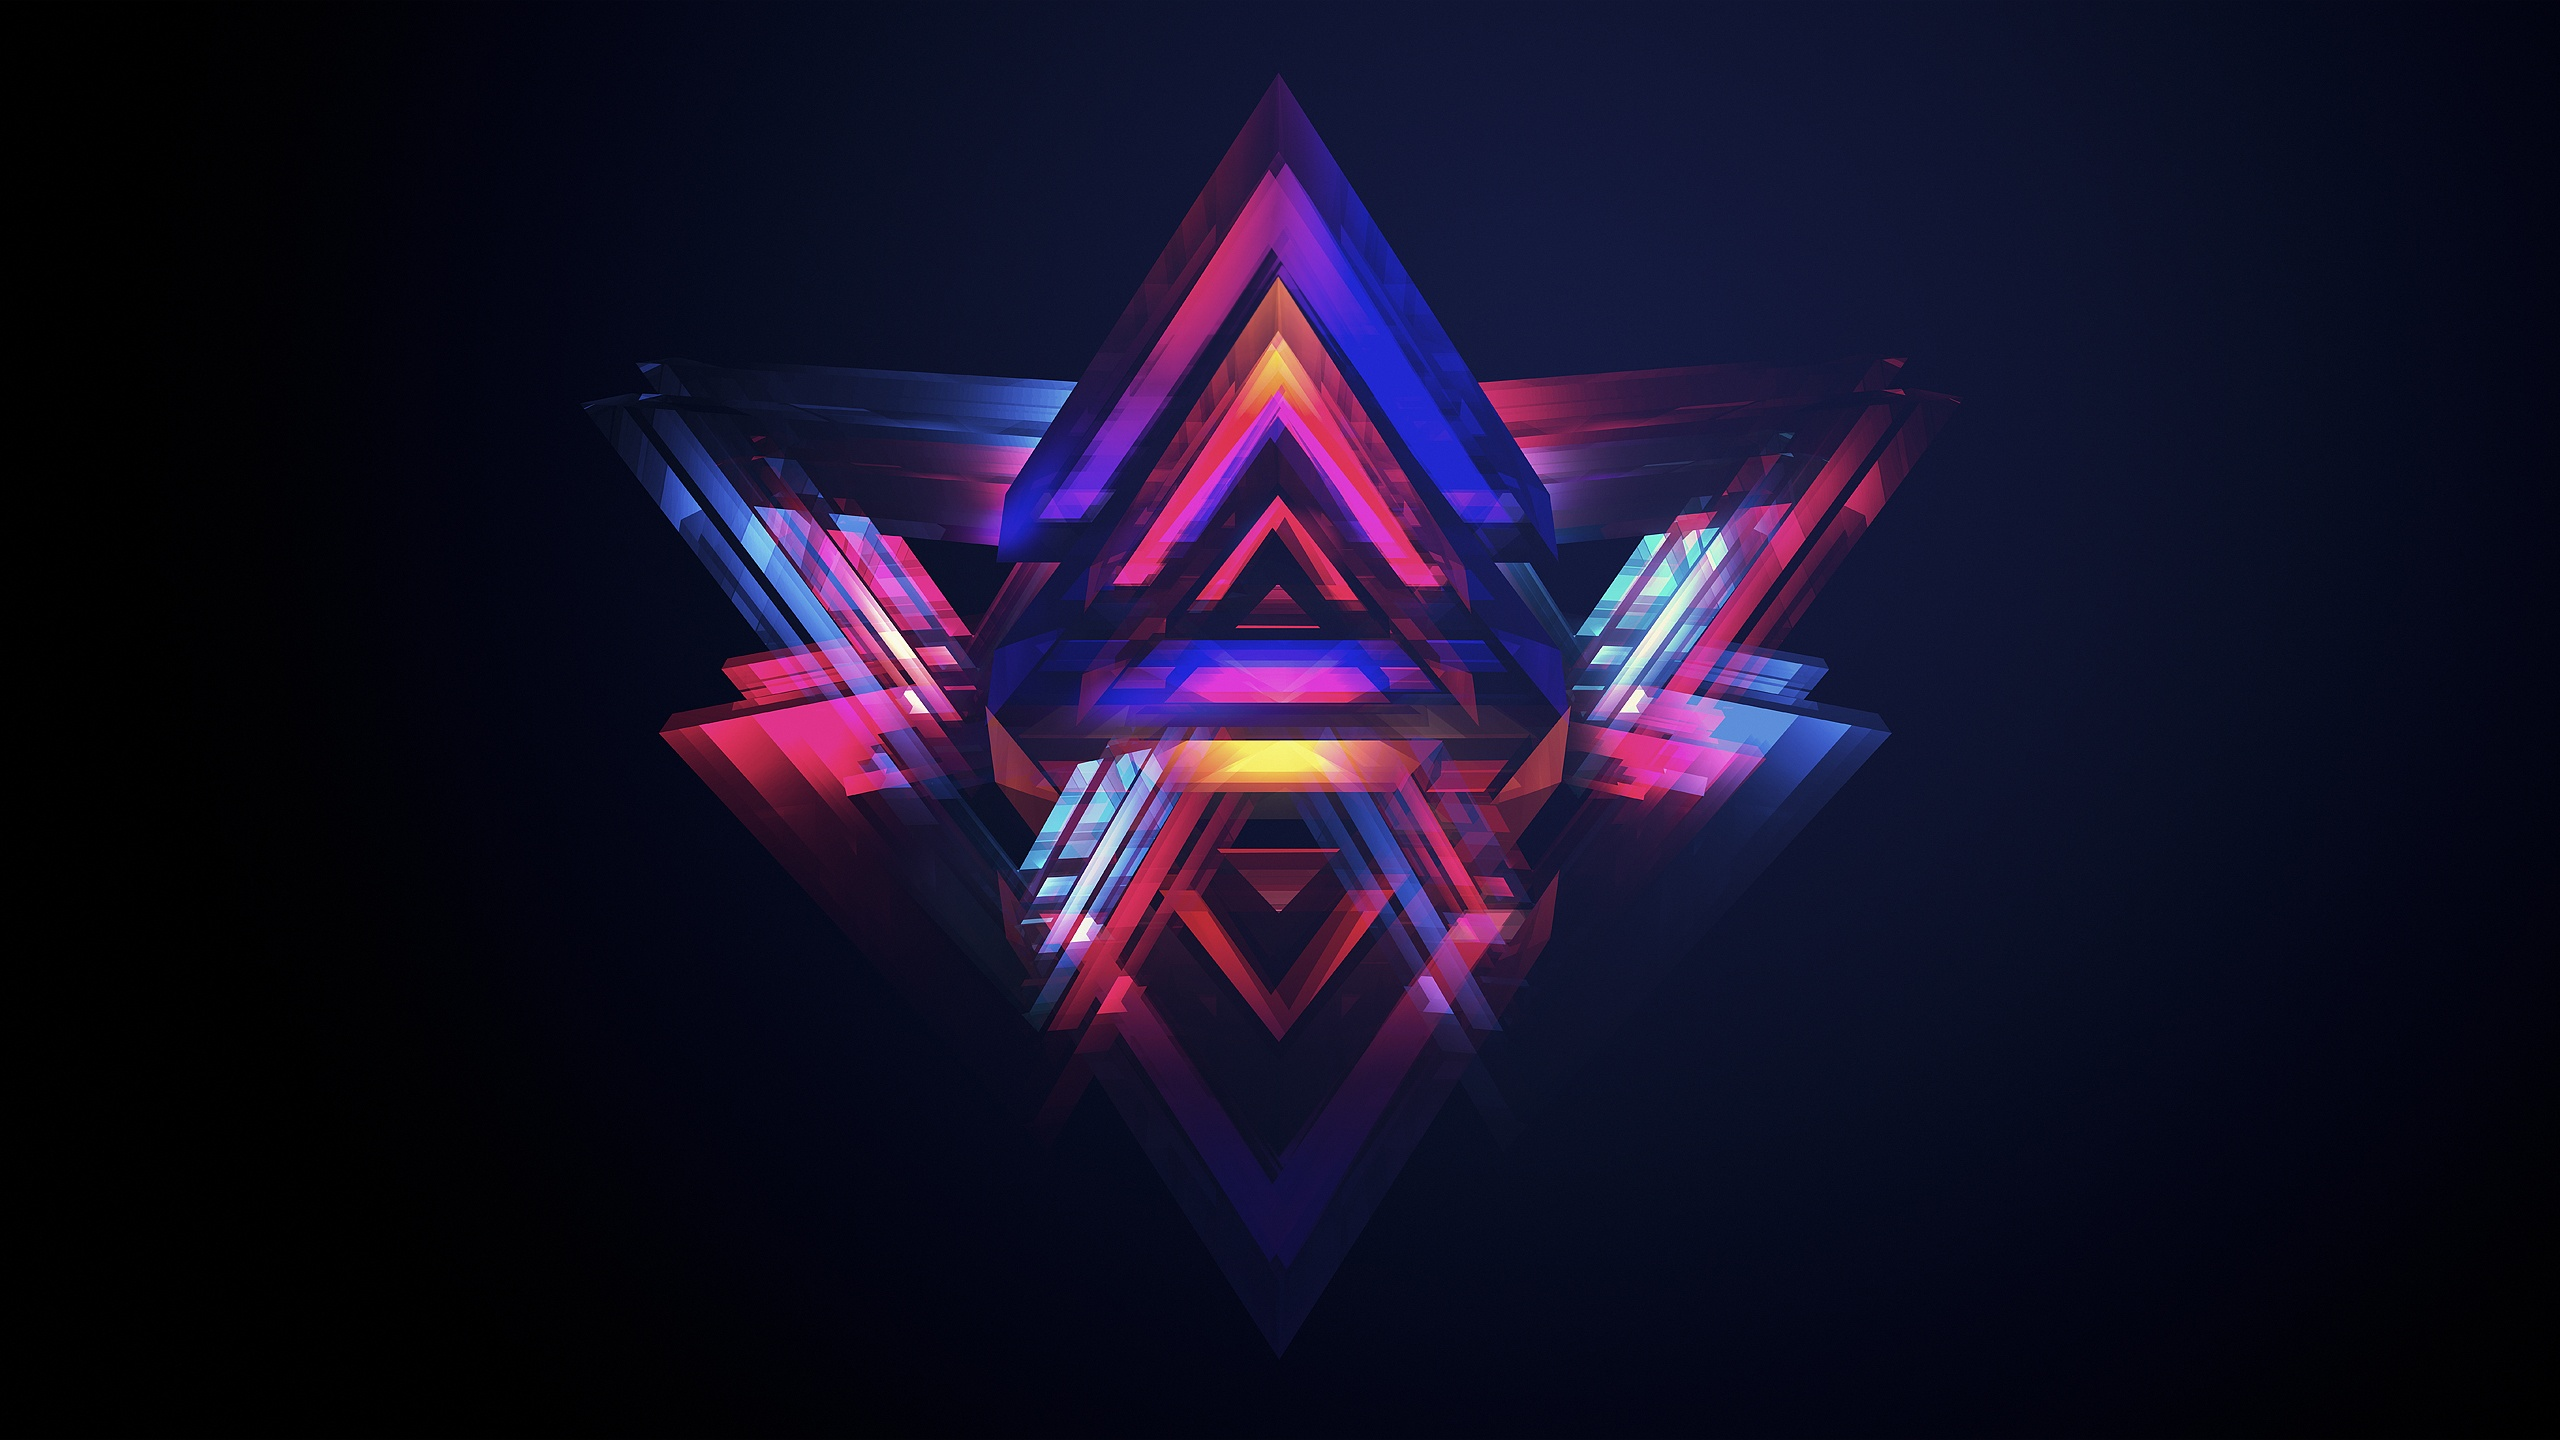 Colorful Star Abstract Wallpapers 784.21 Kb